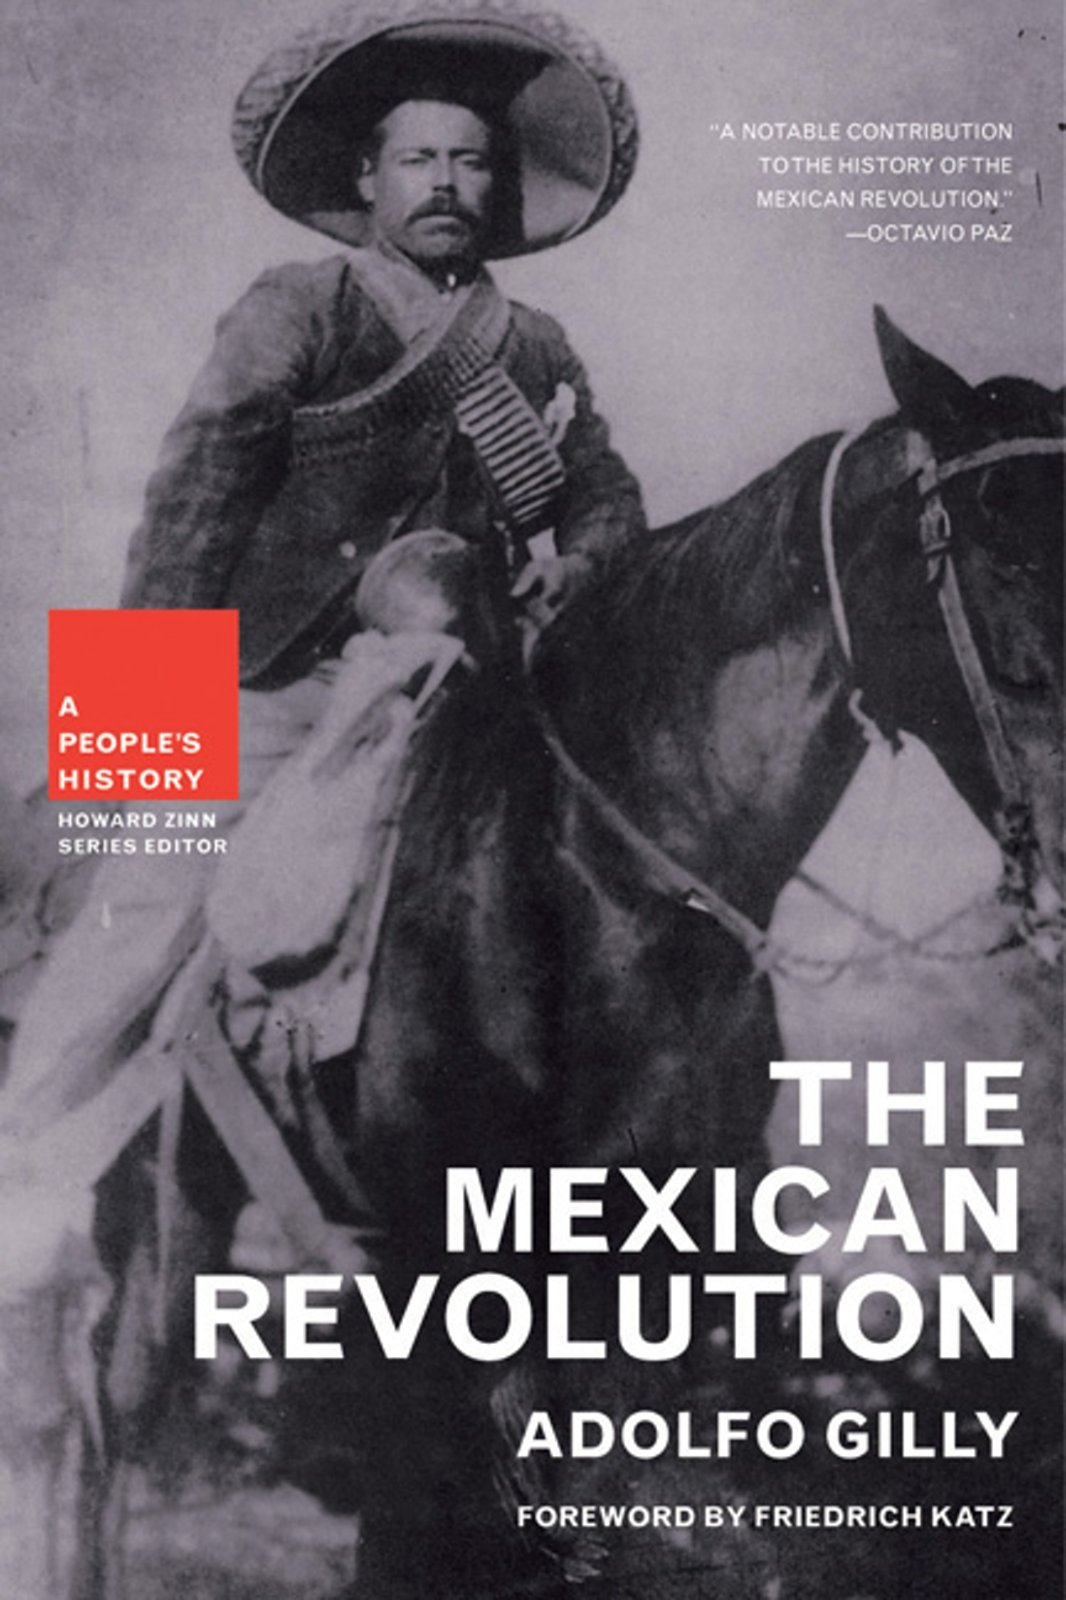 mexican revolution the a people s history amazon co uk adolfo mexican revolution the a people s history amazon co uk adolfo gilly 9781595581235 books